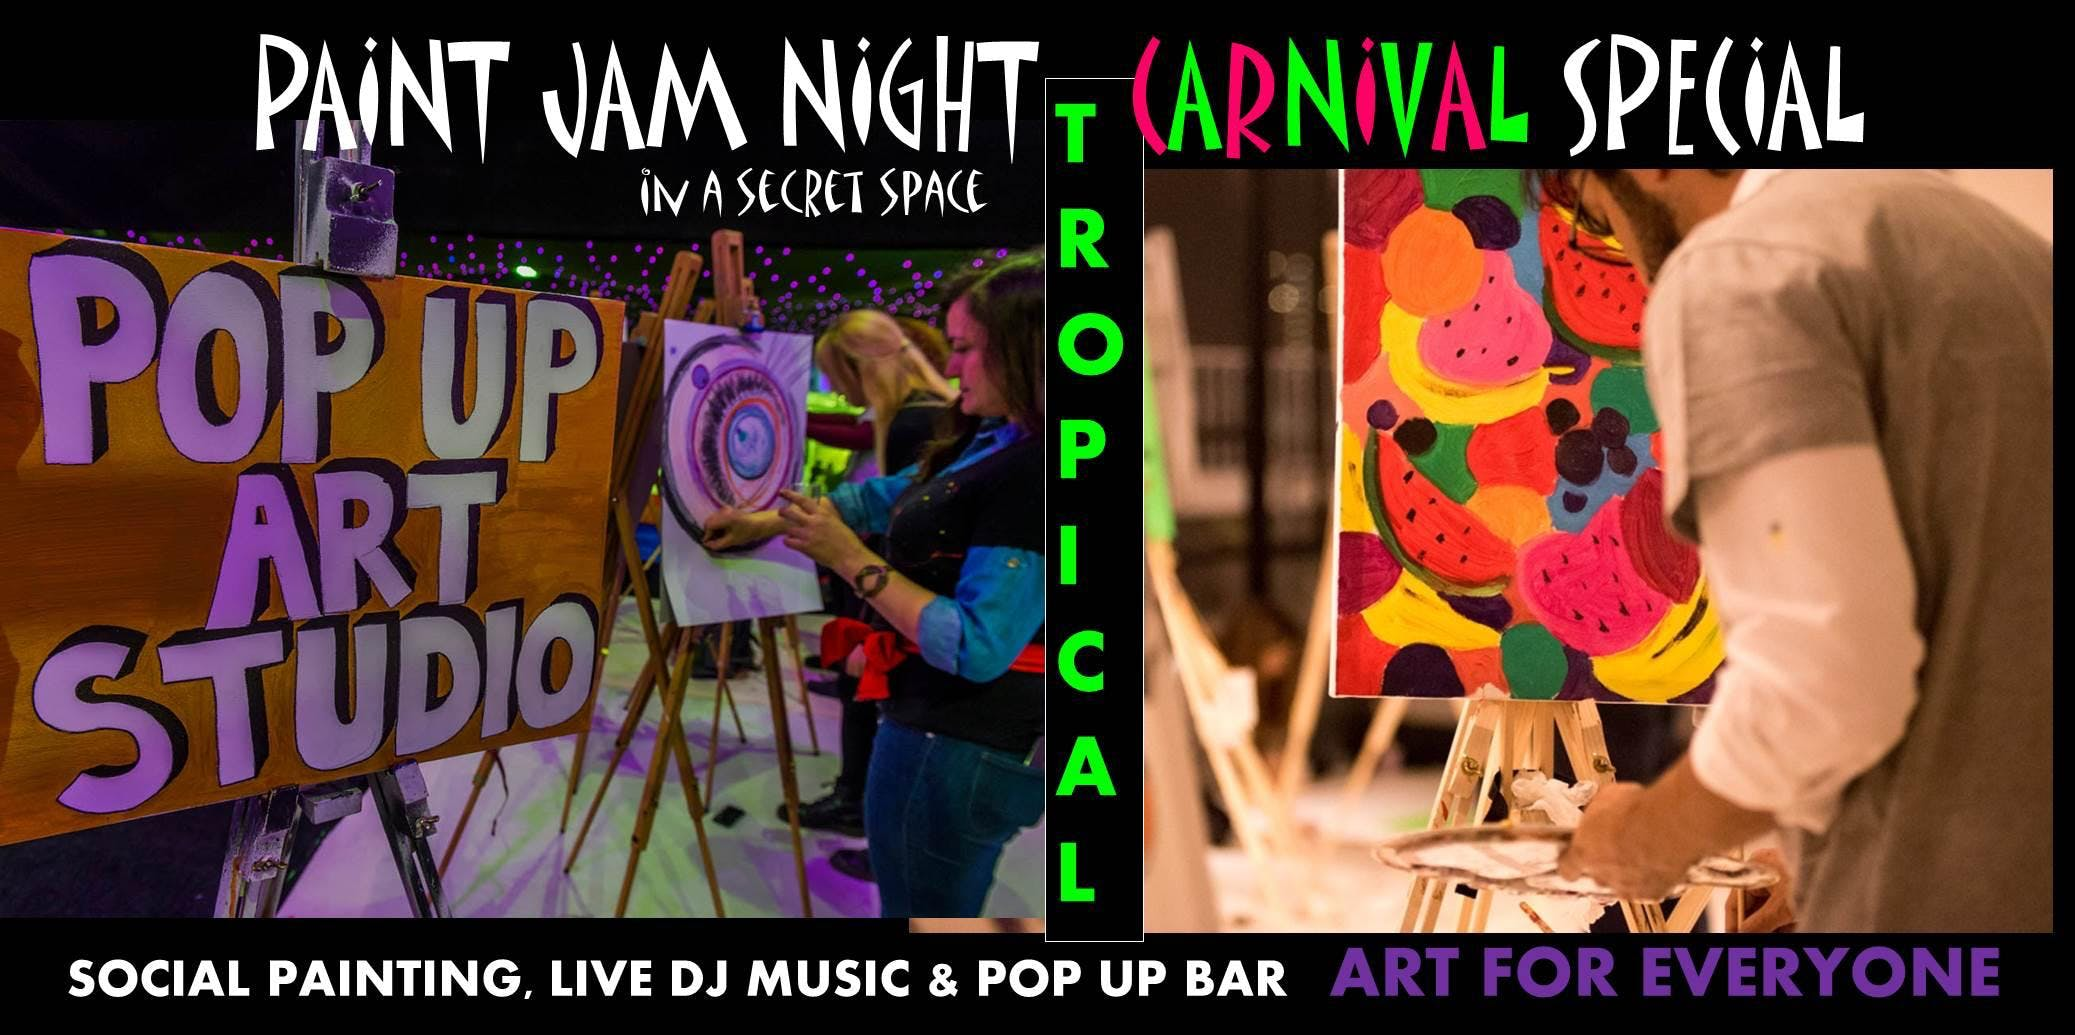 Carnival special PAINT JAM NIGHT TROPICAL Social painting live DJ &amp rum cocktails